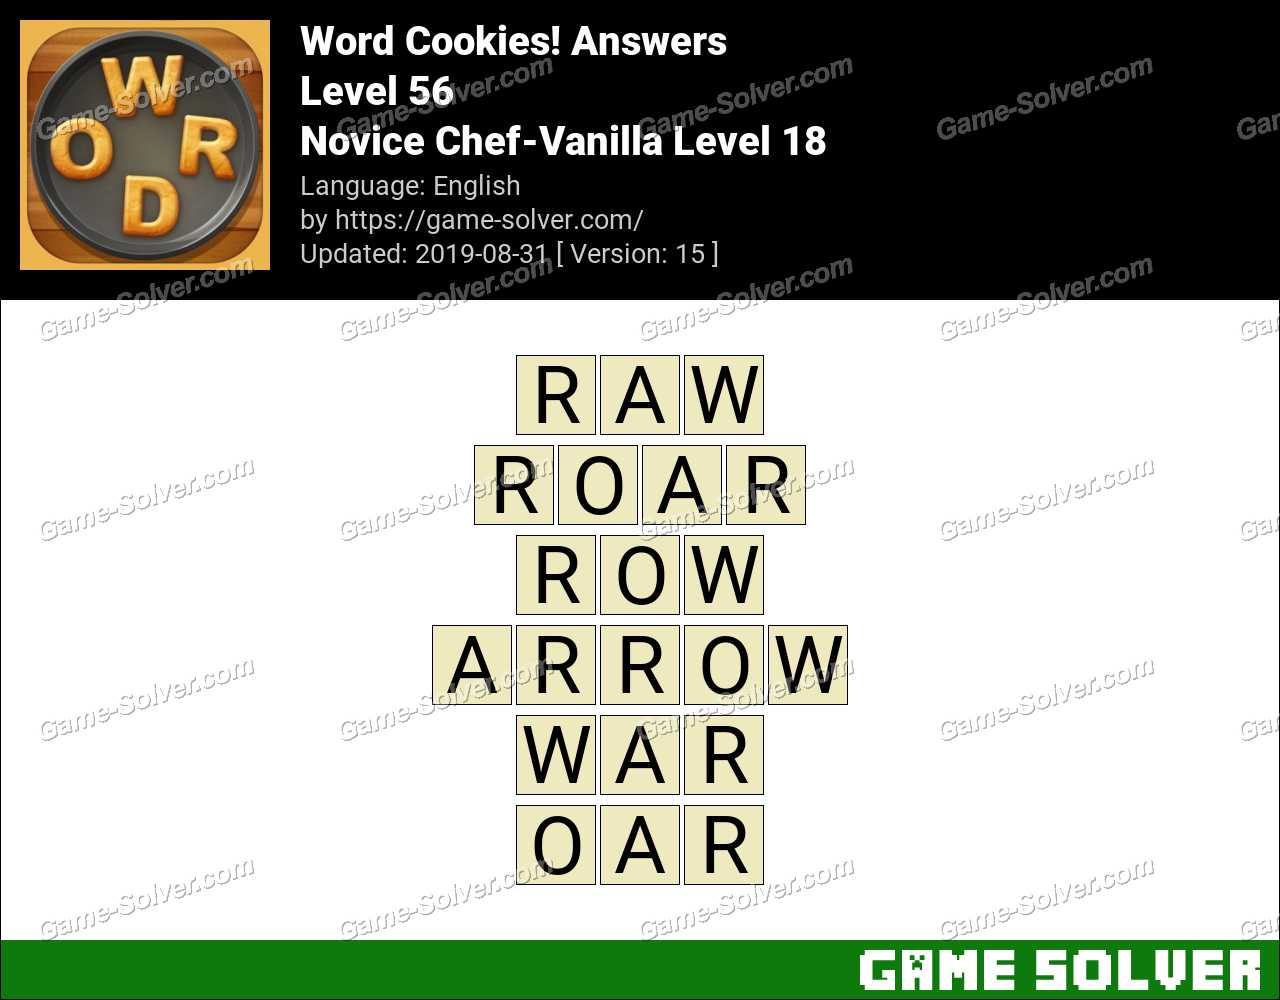 Word Cookies Novice Chef-Vanilla Level 18 Answers